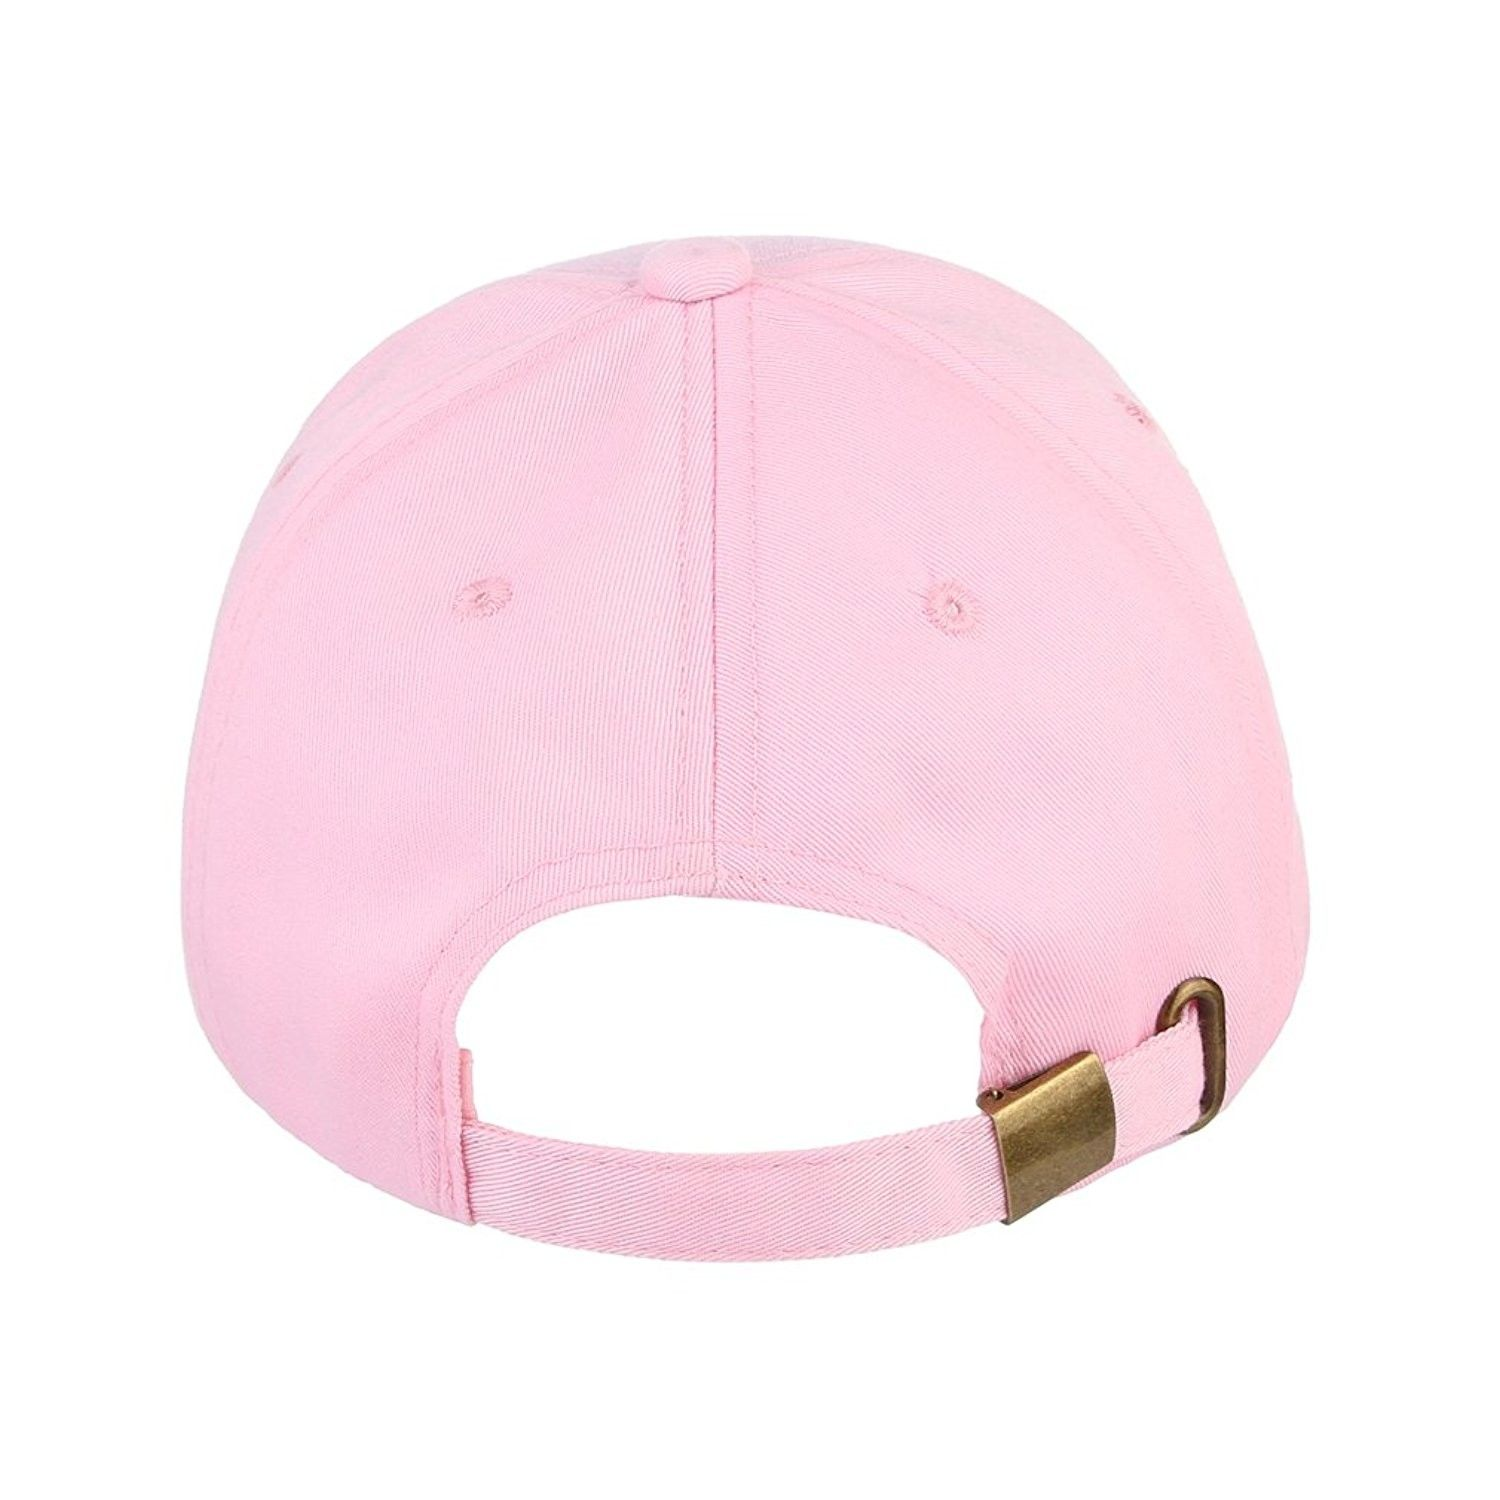 081f69bff9a Women s Adjustable Baseball Cap Embroidery Words Dad Hat ...